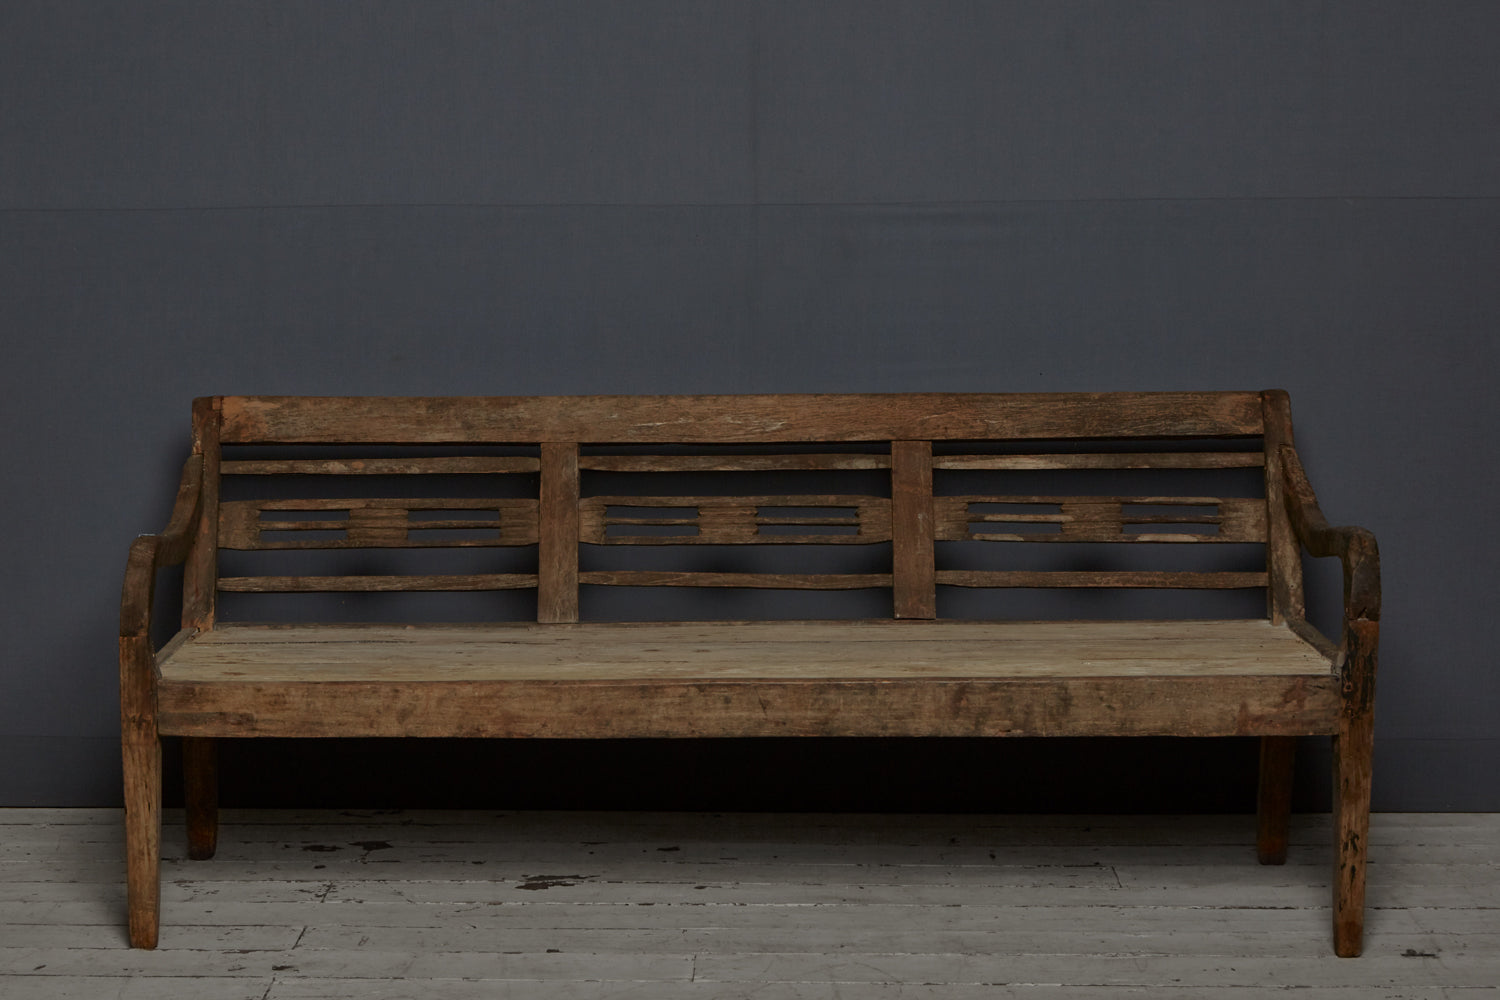 Dutch Colonial Teak Bench from Sumatra